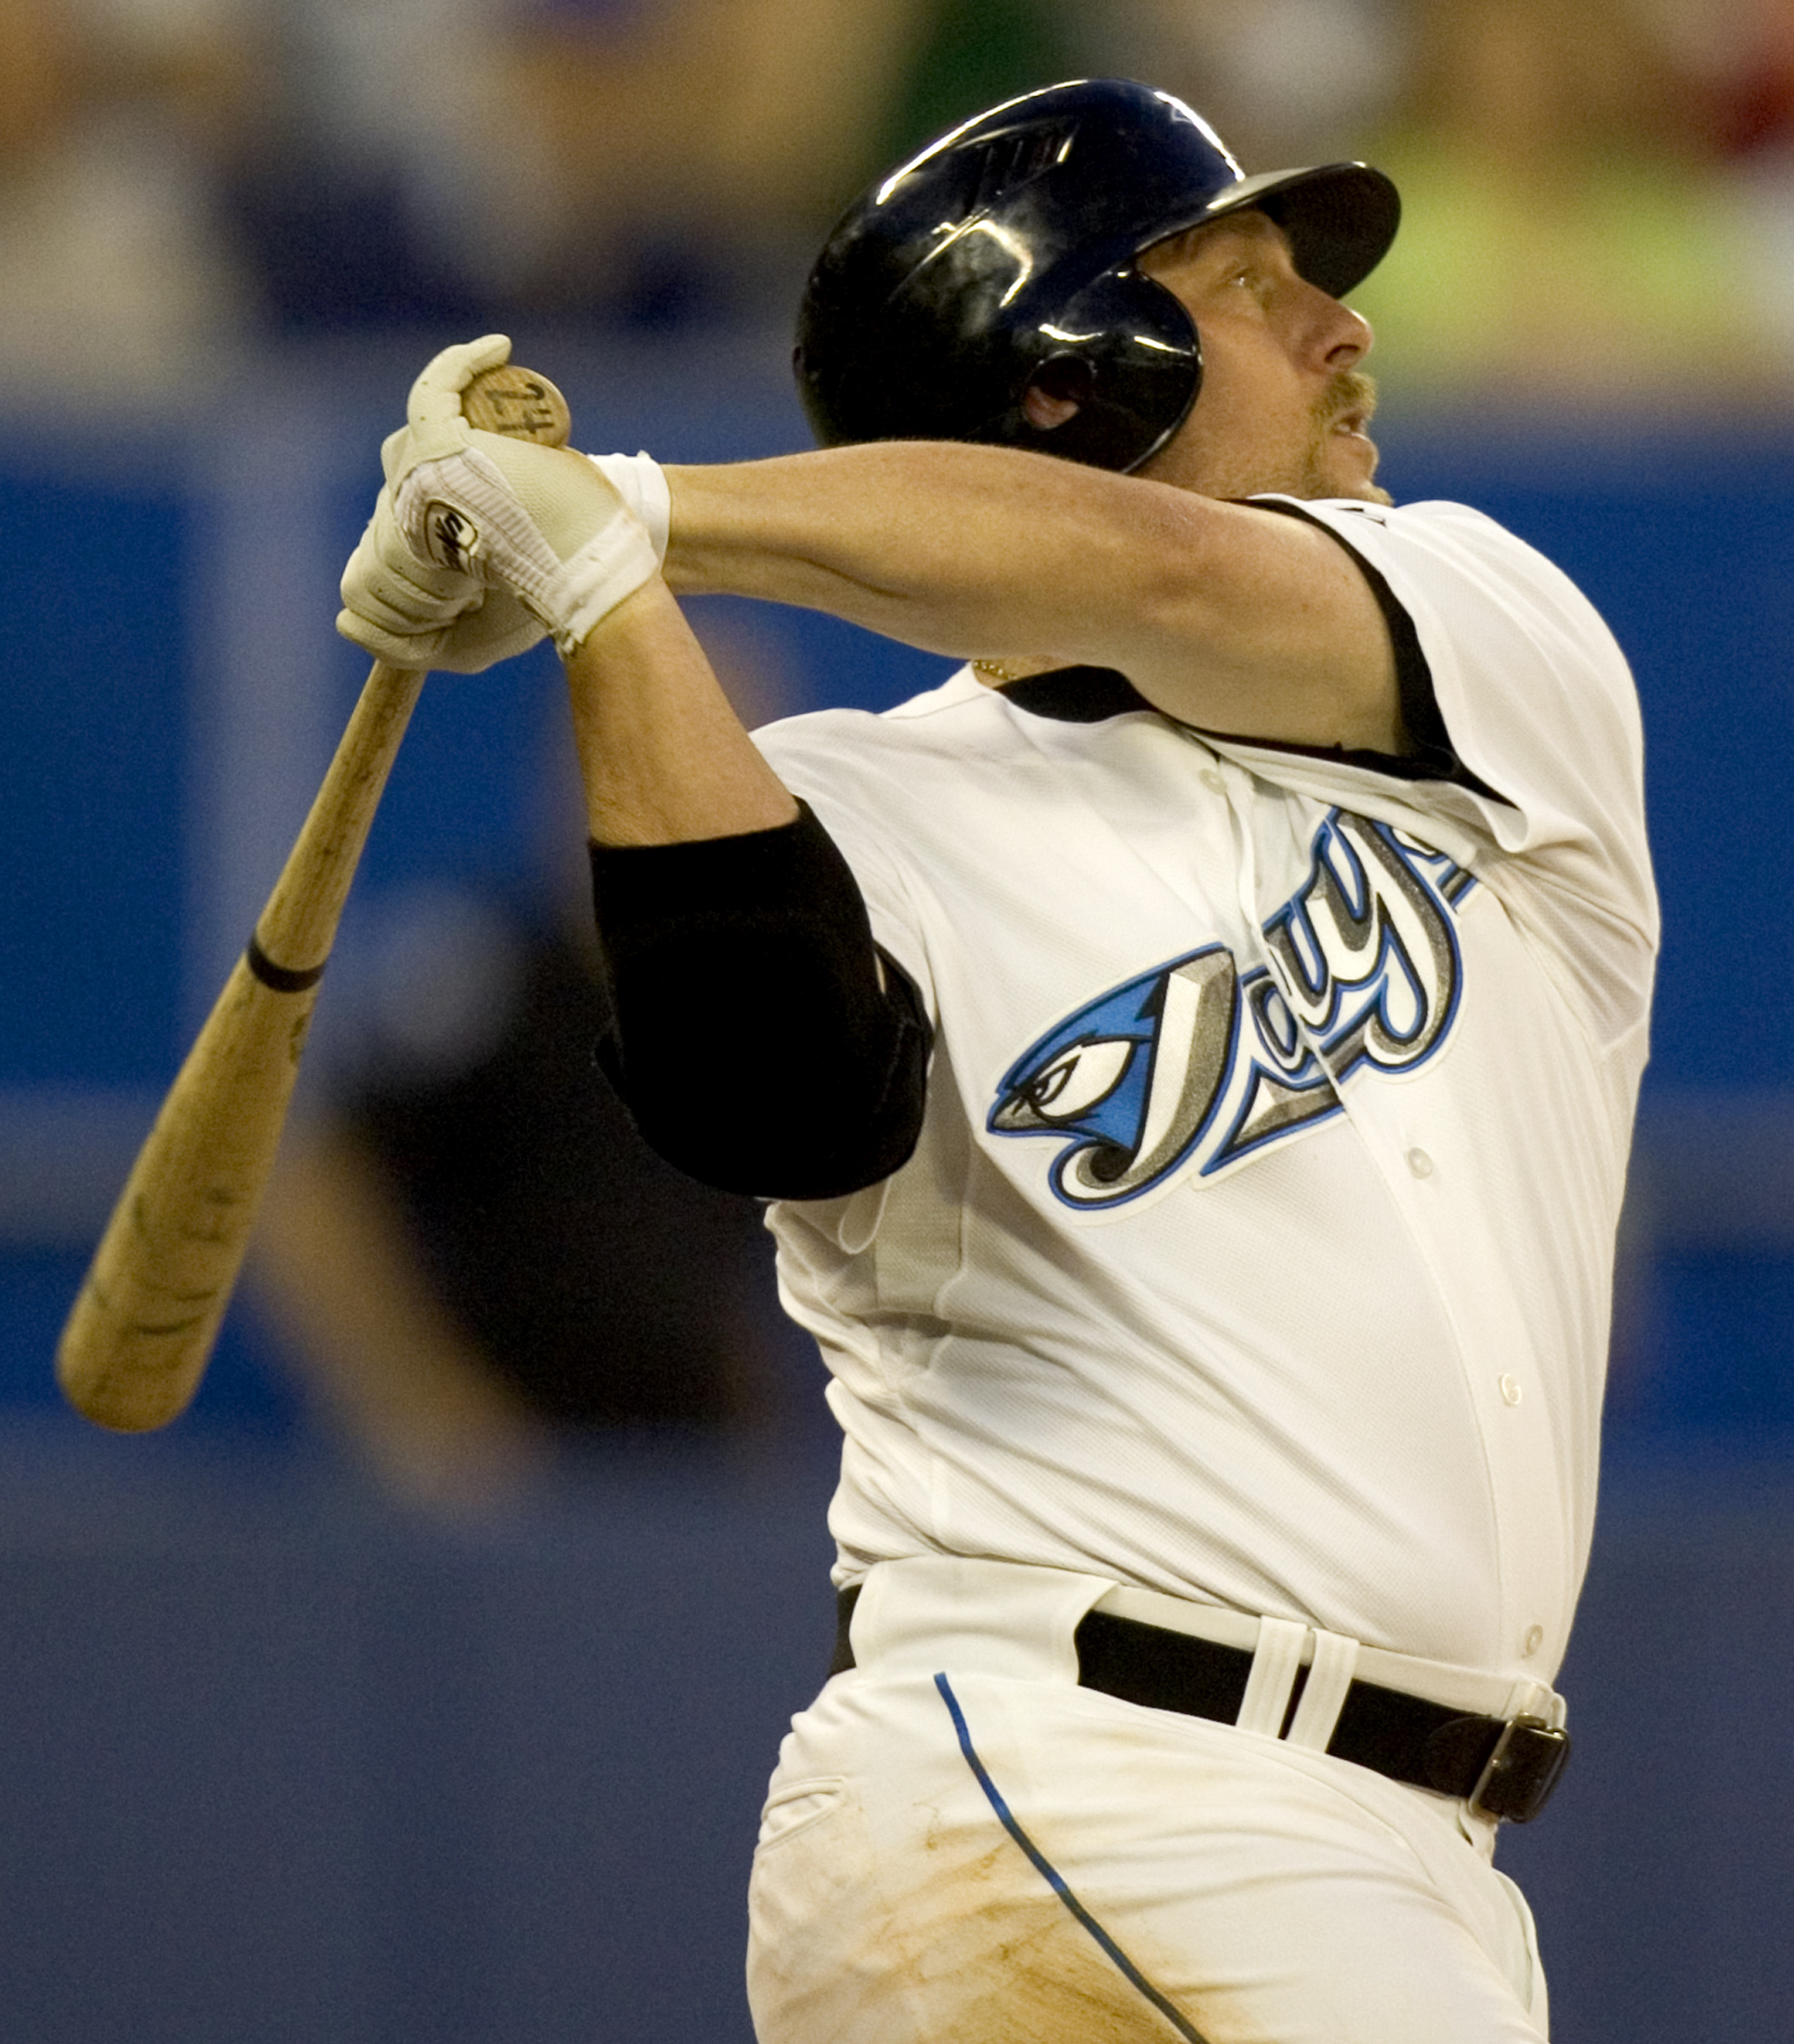 Canadian Baseball Hall of Fame inductee and Fredericton, N.B., native Matt Stairs hit 12 grand slams during his major league career, which is by far the most by a Canadian. Photo: Canadian Baseball Hall of Fame